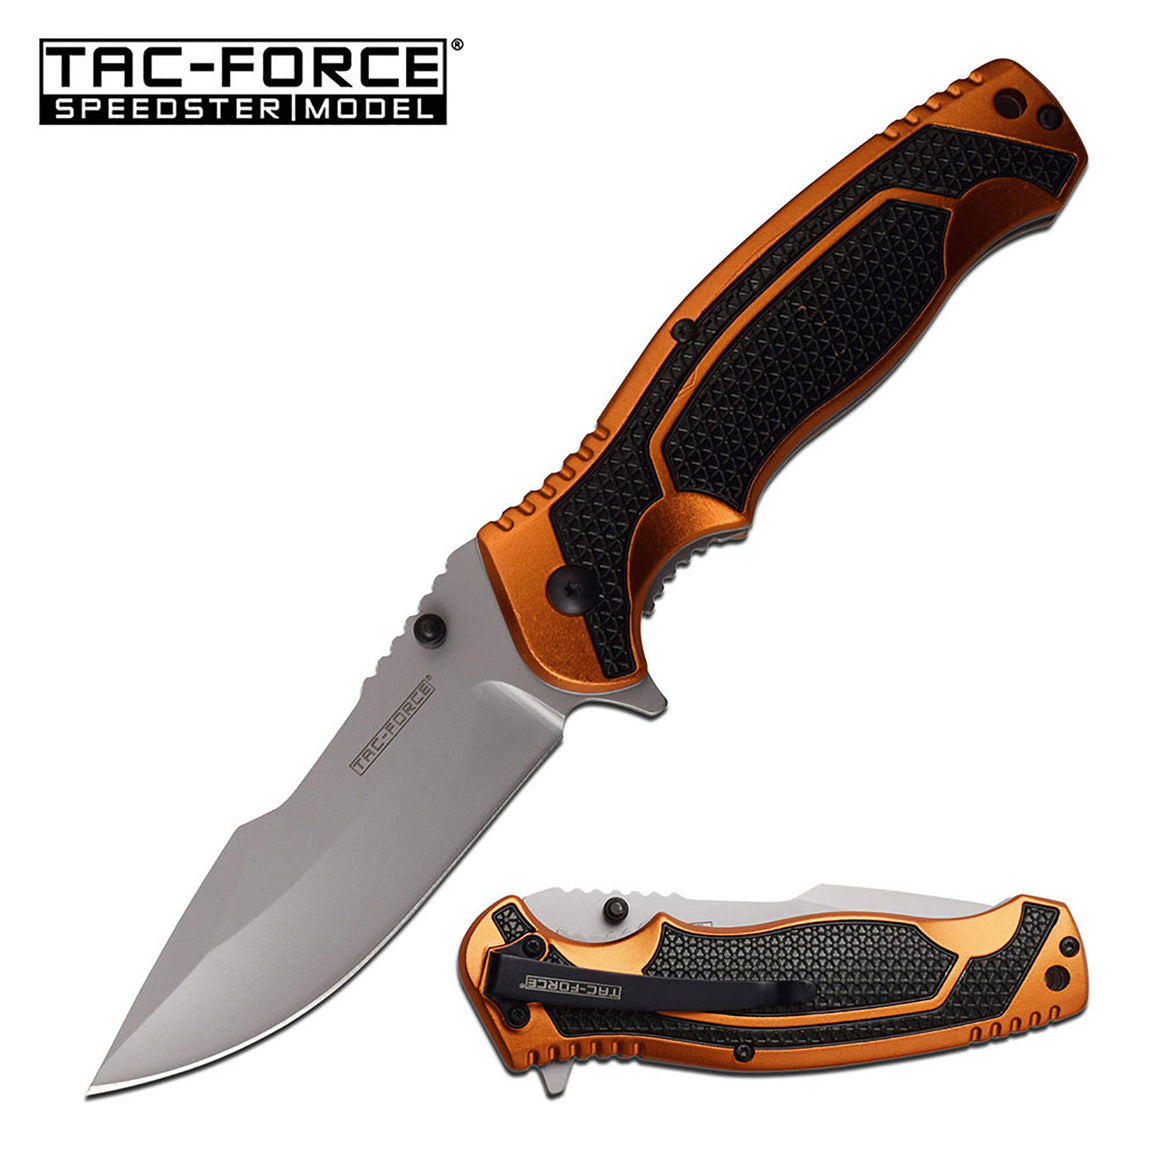 Tac-Force TF-960OR Spring Assisted Knife